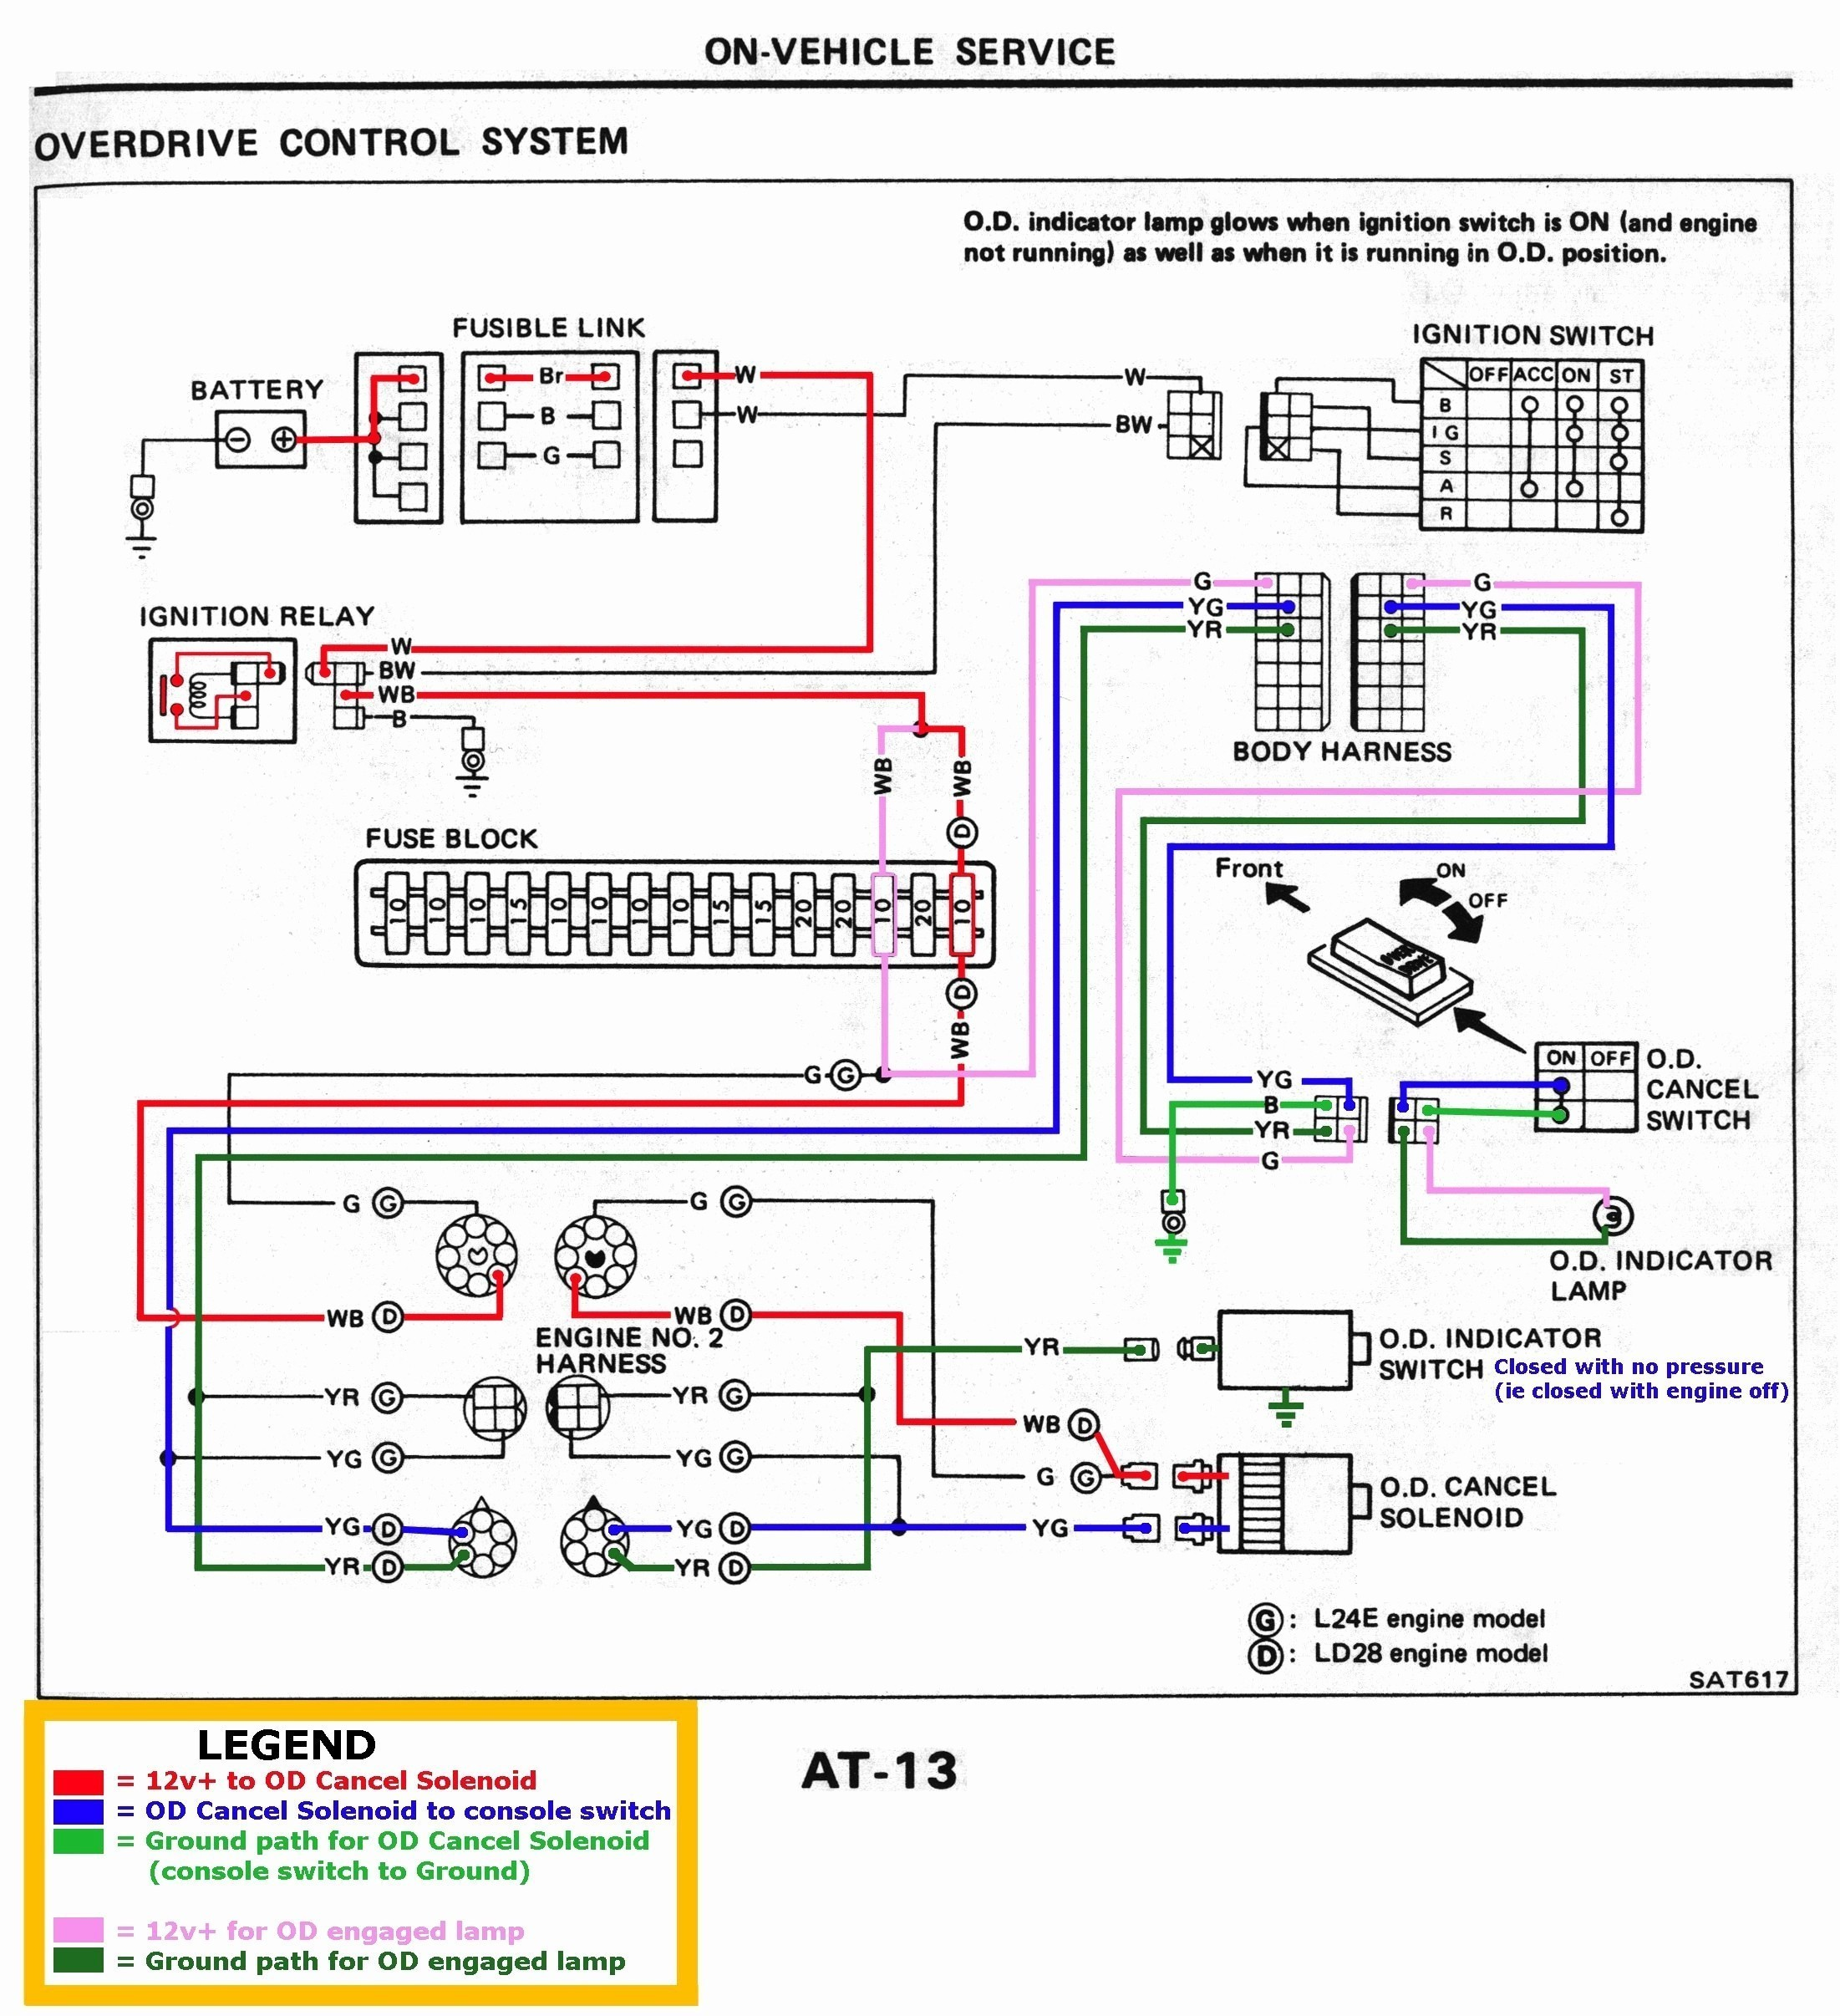 Kawasaki Bayou 220 Engine Diagram Wiring Diagram Kawasaki Bayou 220 Archives Feefee Save Wiring Of Kawasaki Bayou 220 Engine Diagram Wiring Diagram Kawasaki Bayou 220 New Electrical Wiring Circuit